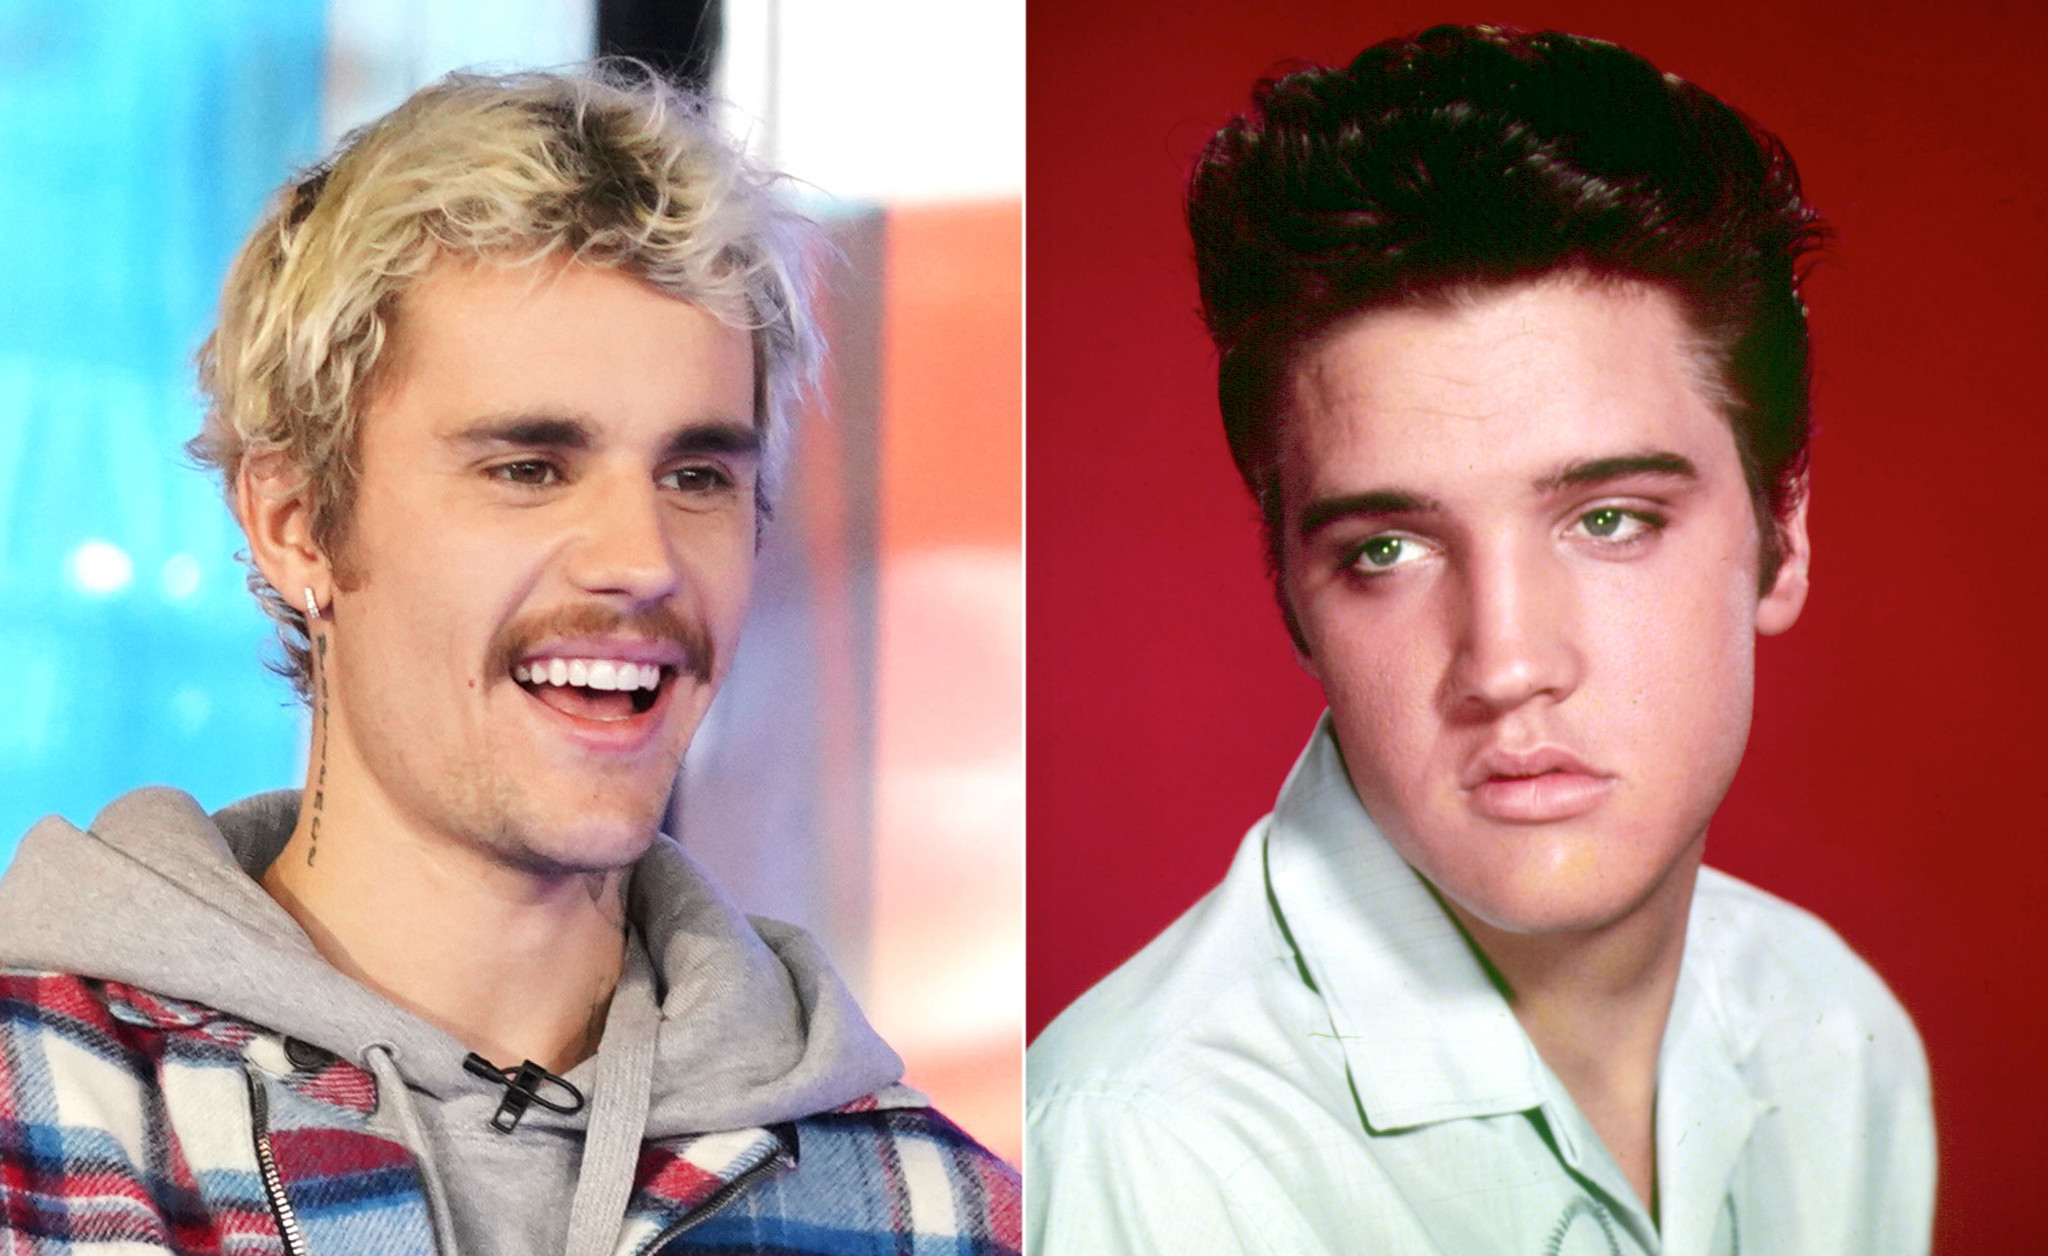 Here's how Justin Bieber beat Elvis Presley's chart record